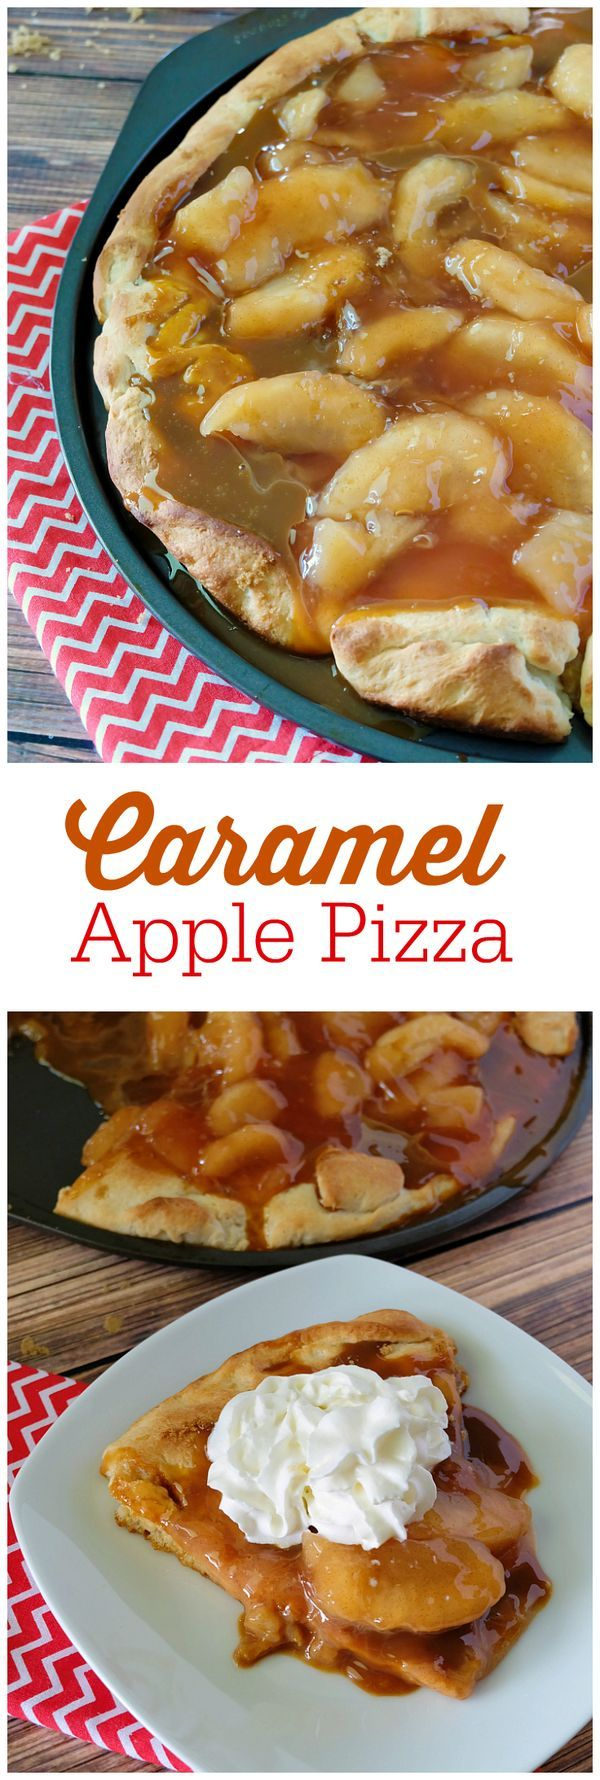 Caramel Apple Pizza--sticky, sweet and so indulgent, this Caramel Apple Pizza recipe is one you will want to make time and again. One of our favorite desserts for sure.